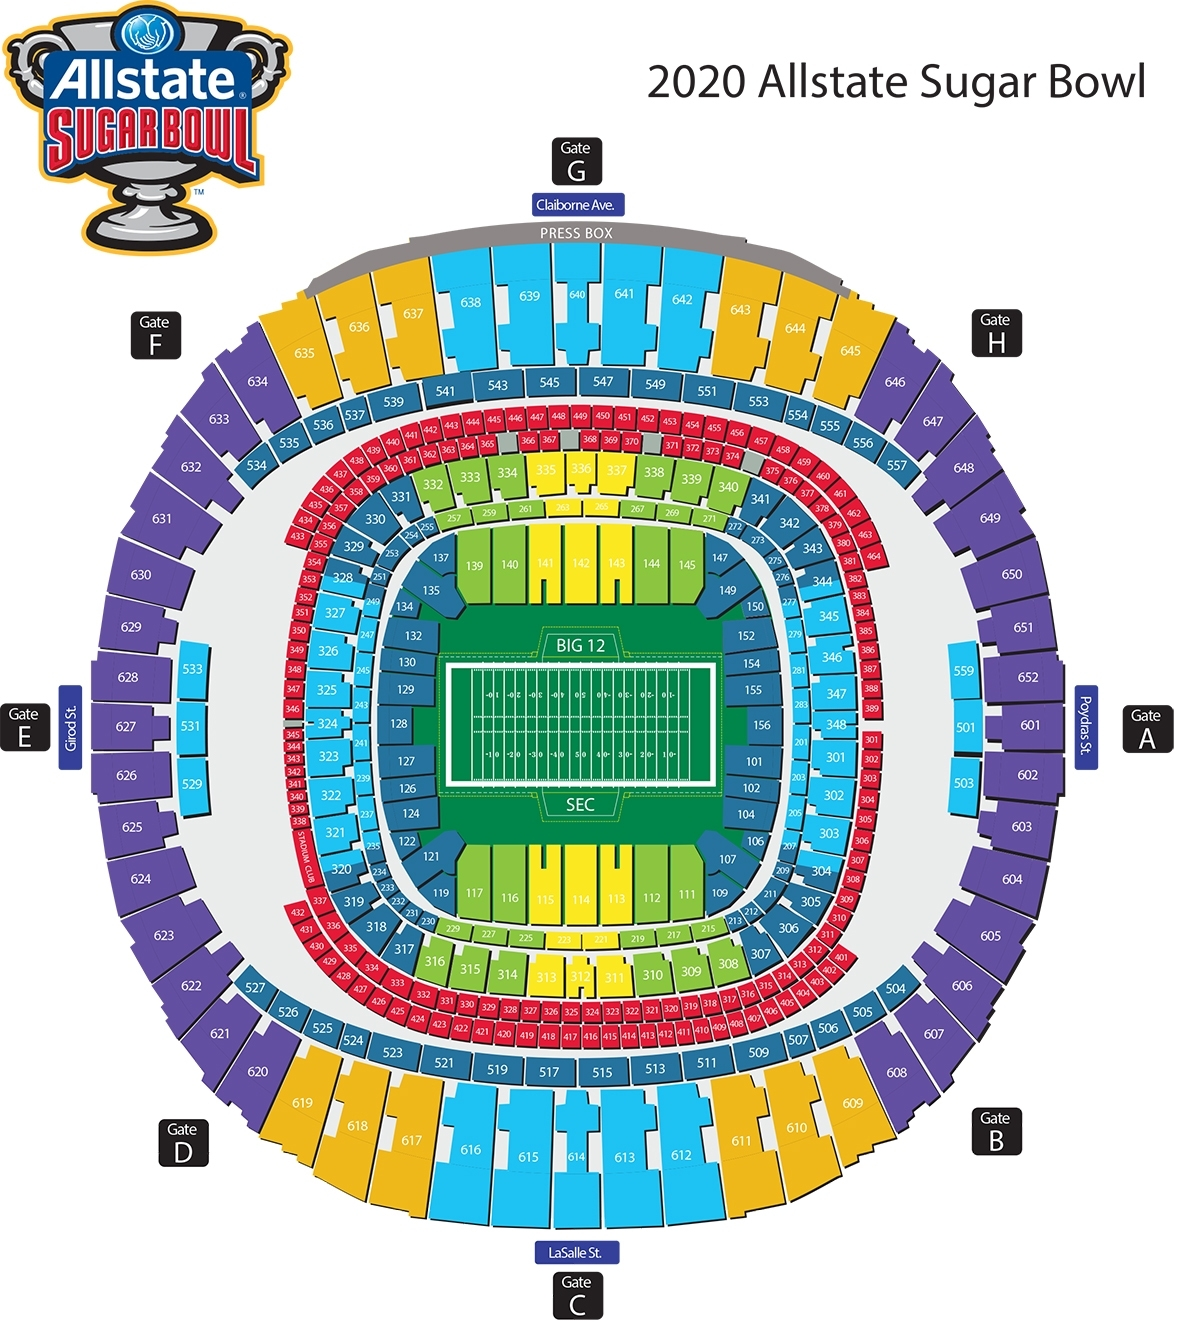 Seating Diagram - Official Site Of The Allstate Sugar Bowl with regard to Super Bowl Seating Chart 2018